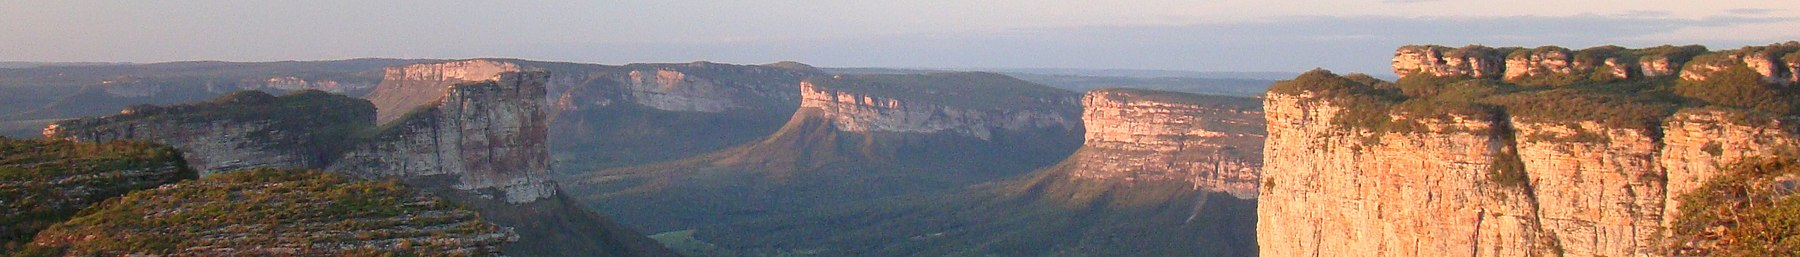 WV banner Central South Bahia Landscape in Chapada Diamantina.jpg